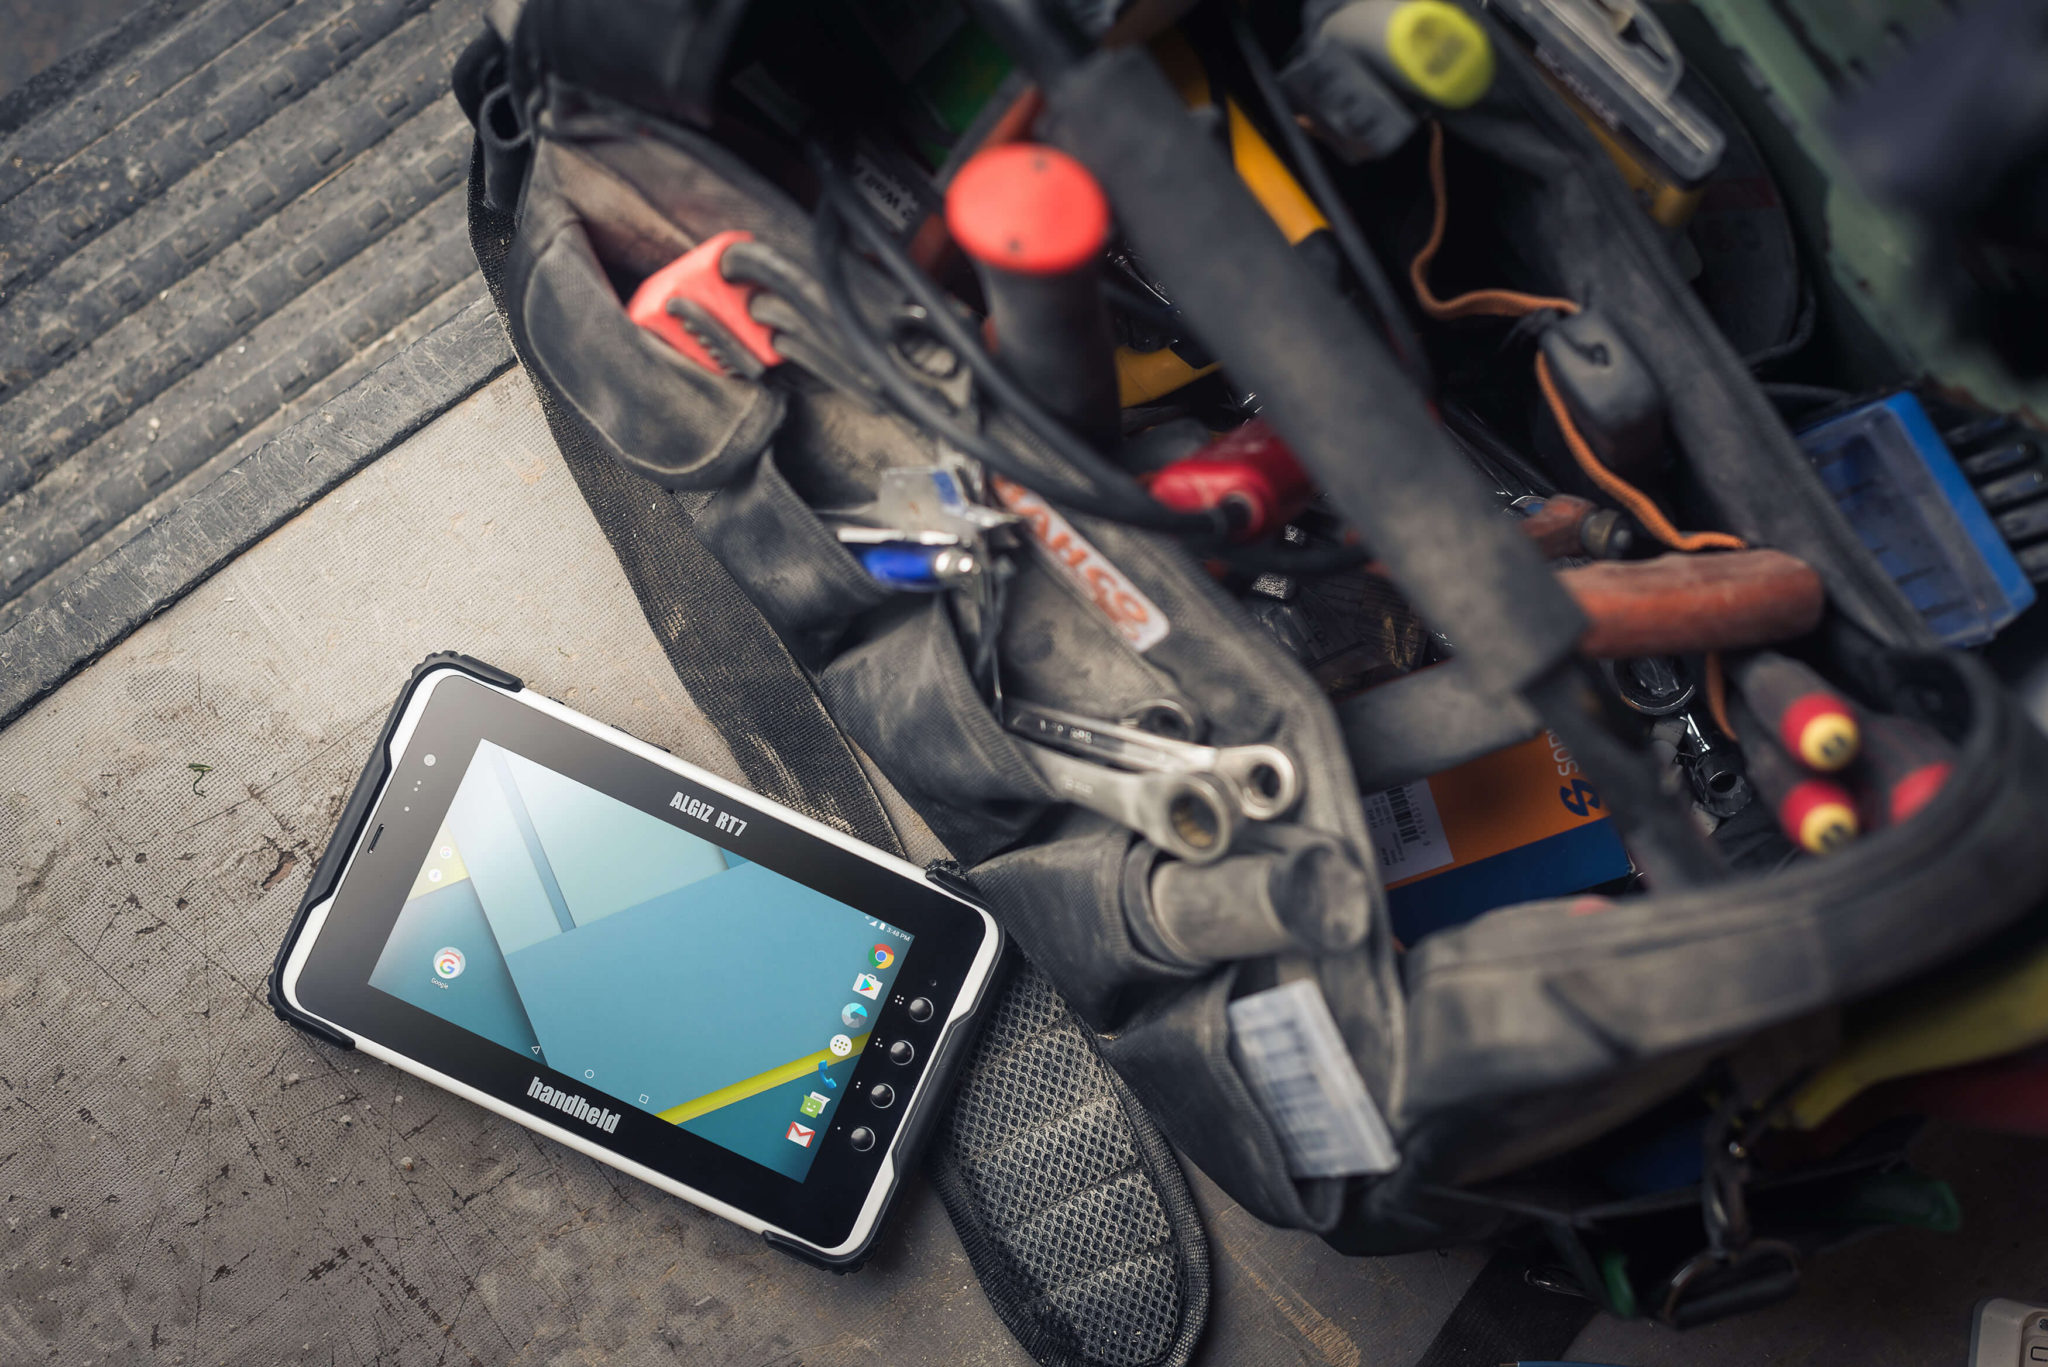 ALGIZ-RT7-rugged-Android-tablet-utilities-field service-Android-6